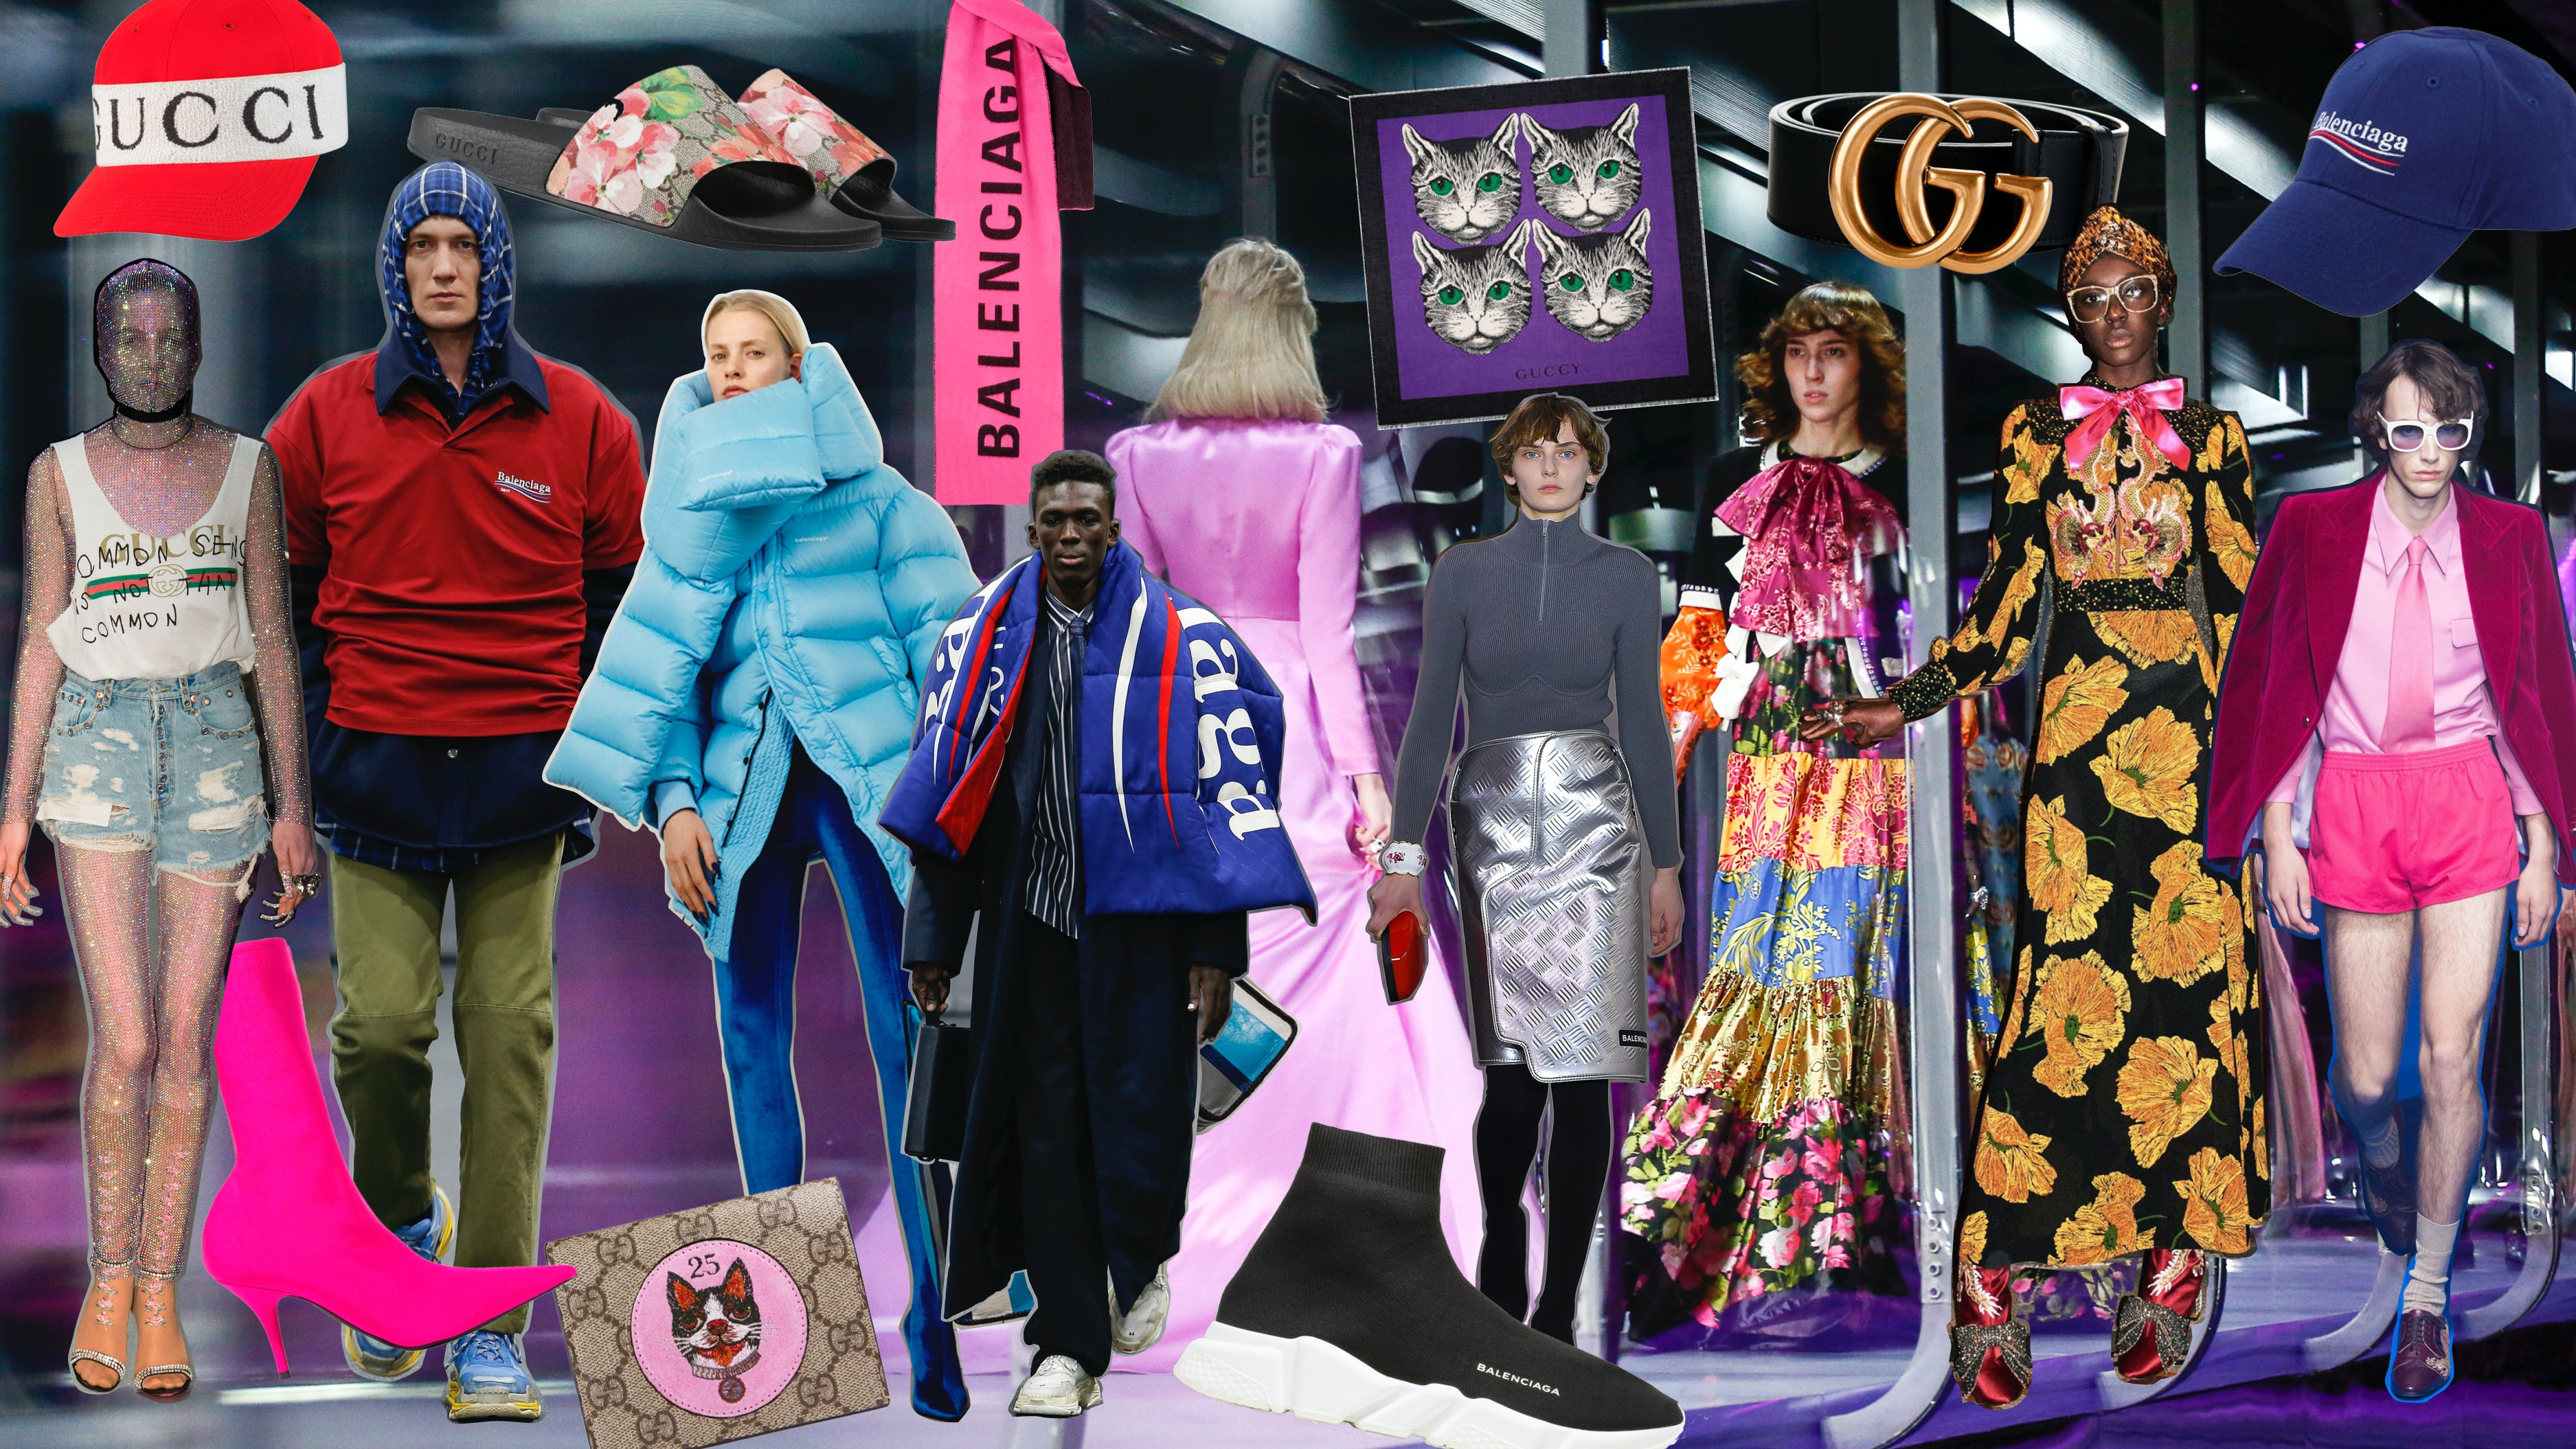 Fashion design computer programs for mac Celebrity Pictures and Photos Celebrity Gossip Daily Express